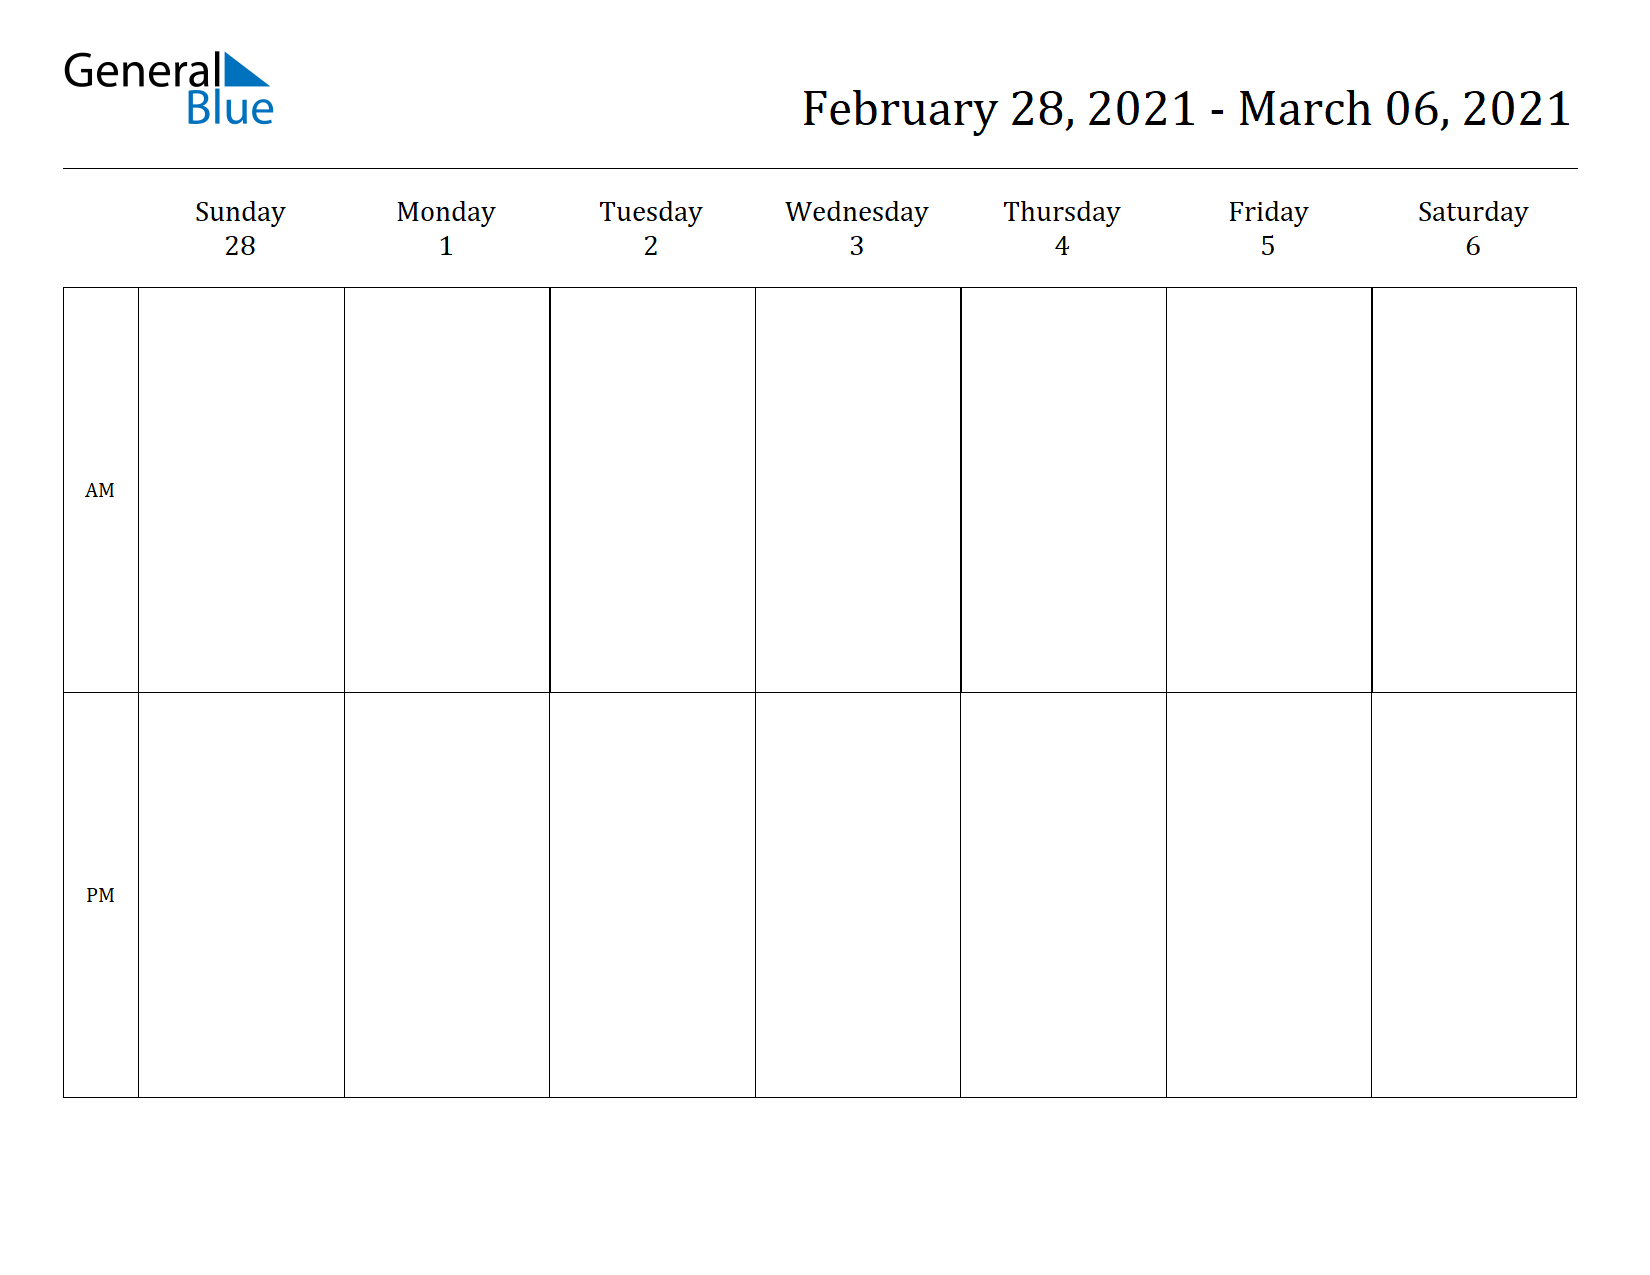 Weekly Calendar for Feb 28, 2021 to Mar 06, 2021